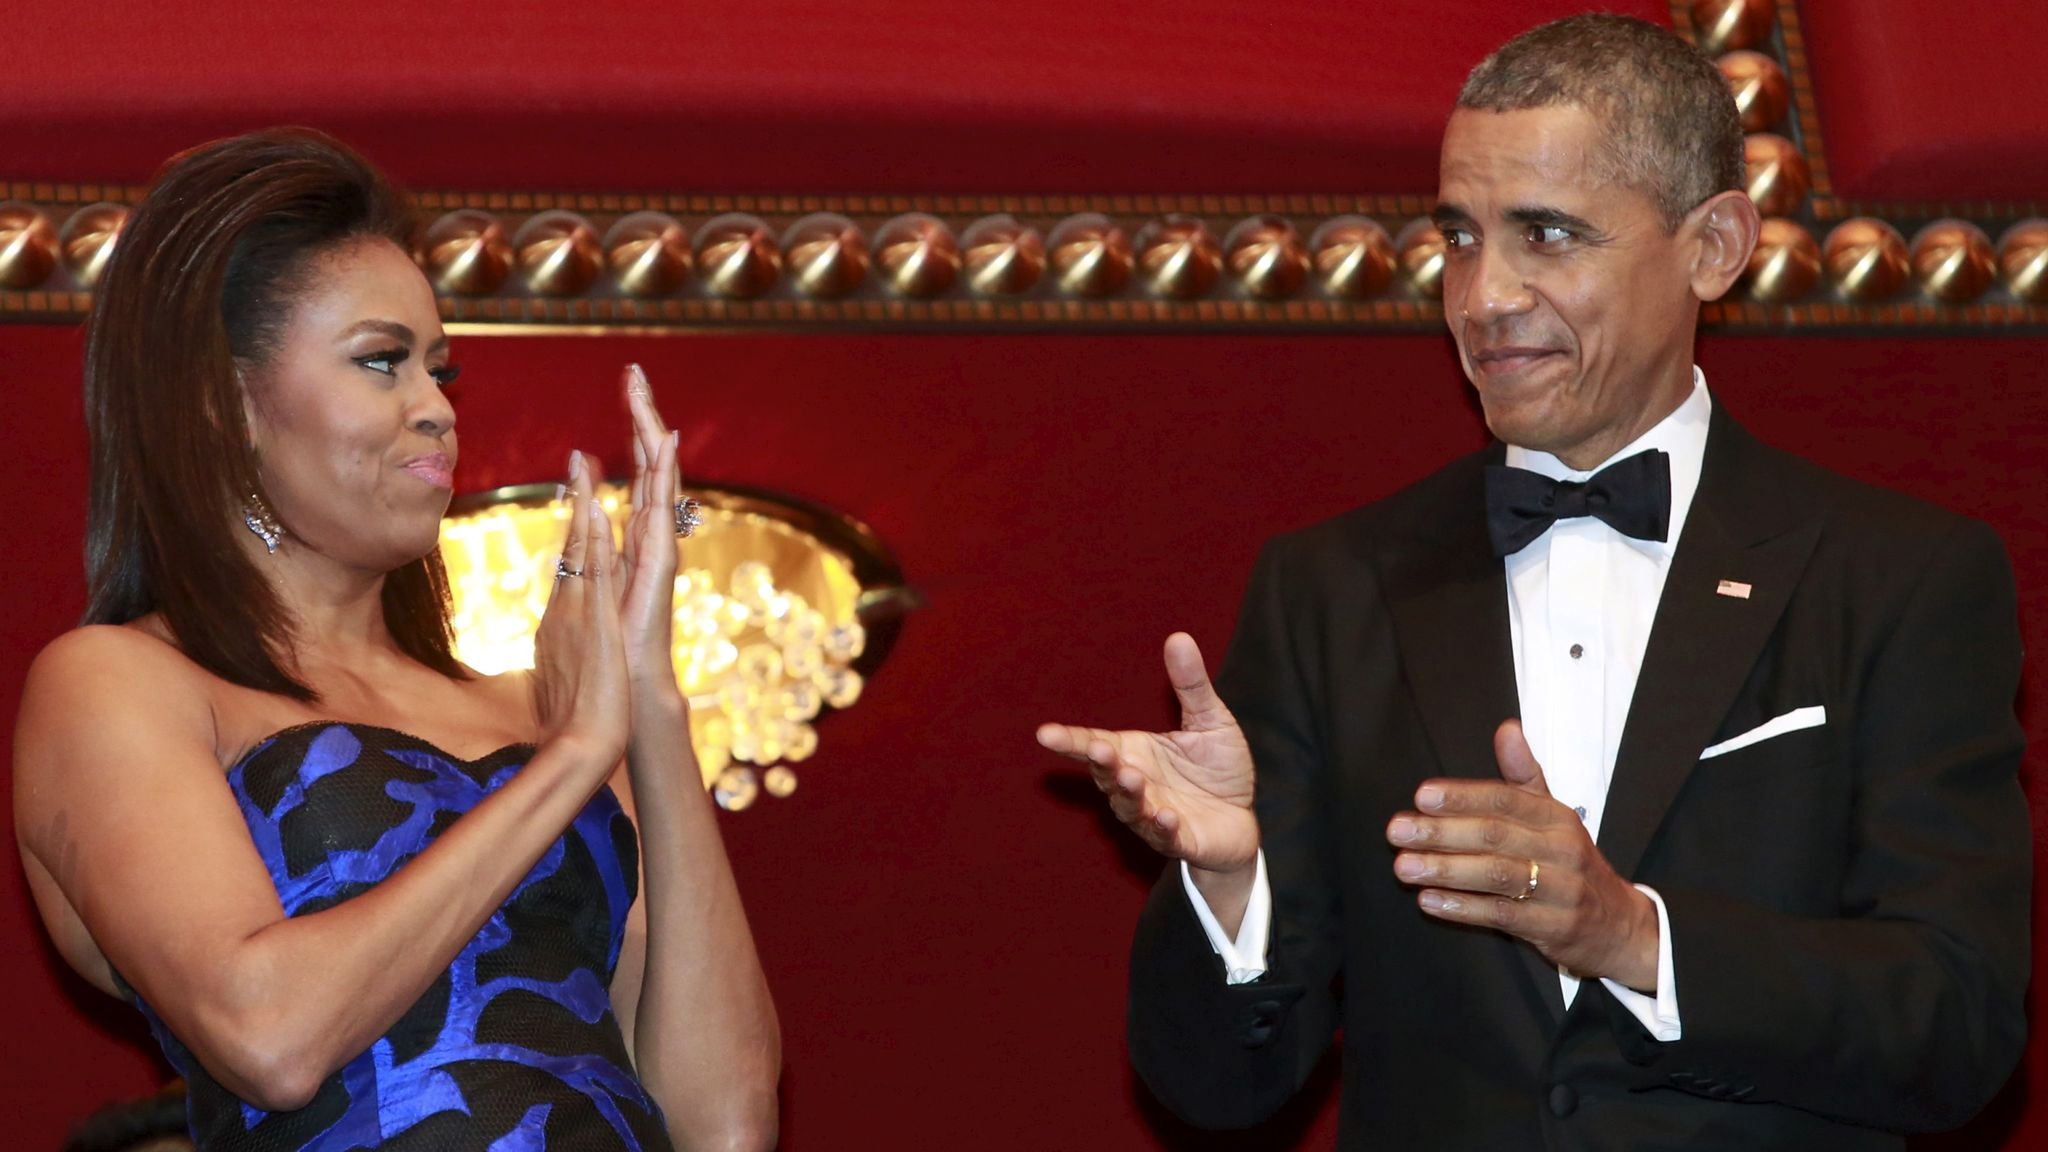 Like Harry and Meghan, Barack and Michelle have deals with Netflix and Spotify